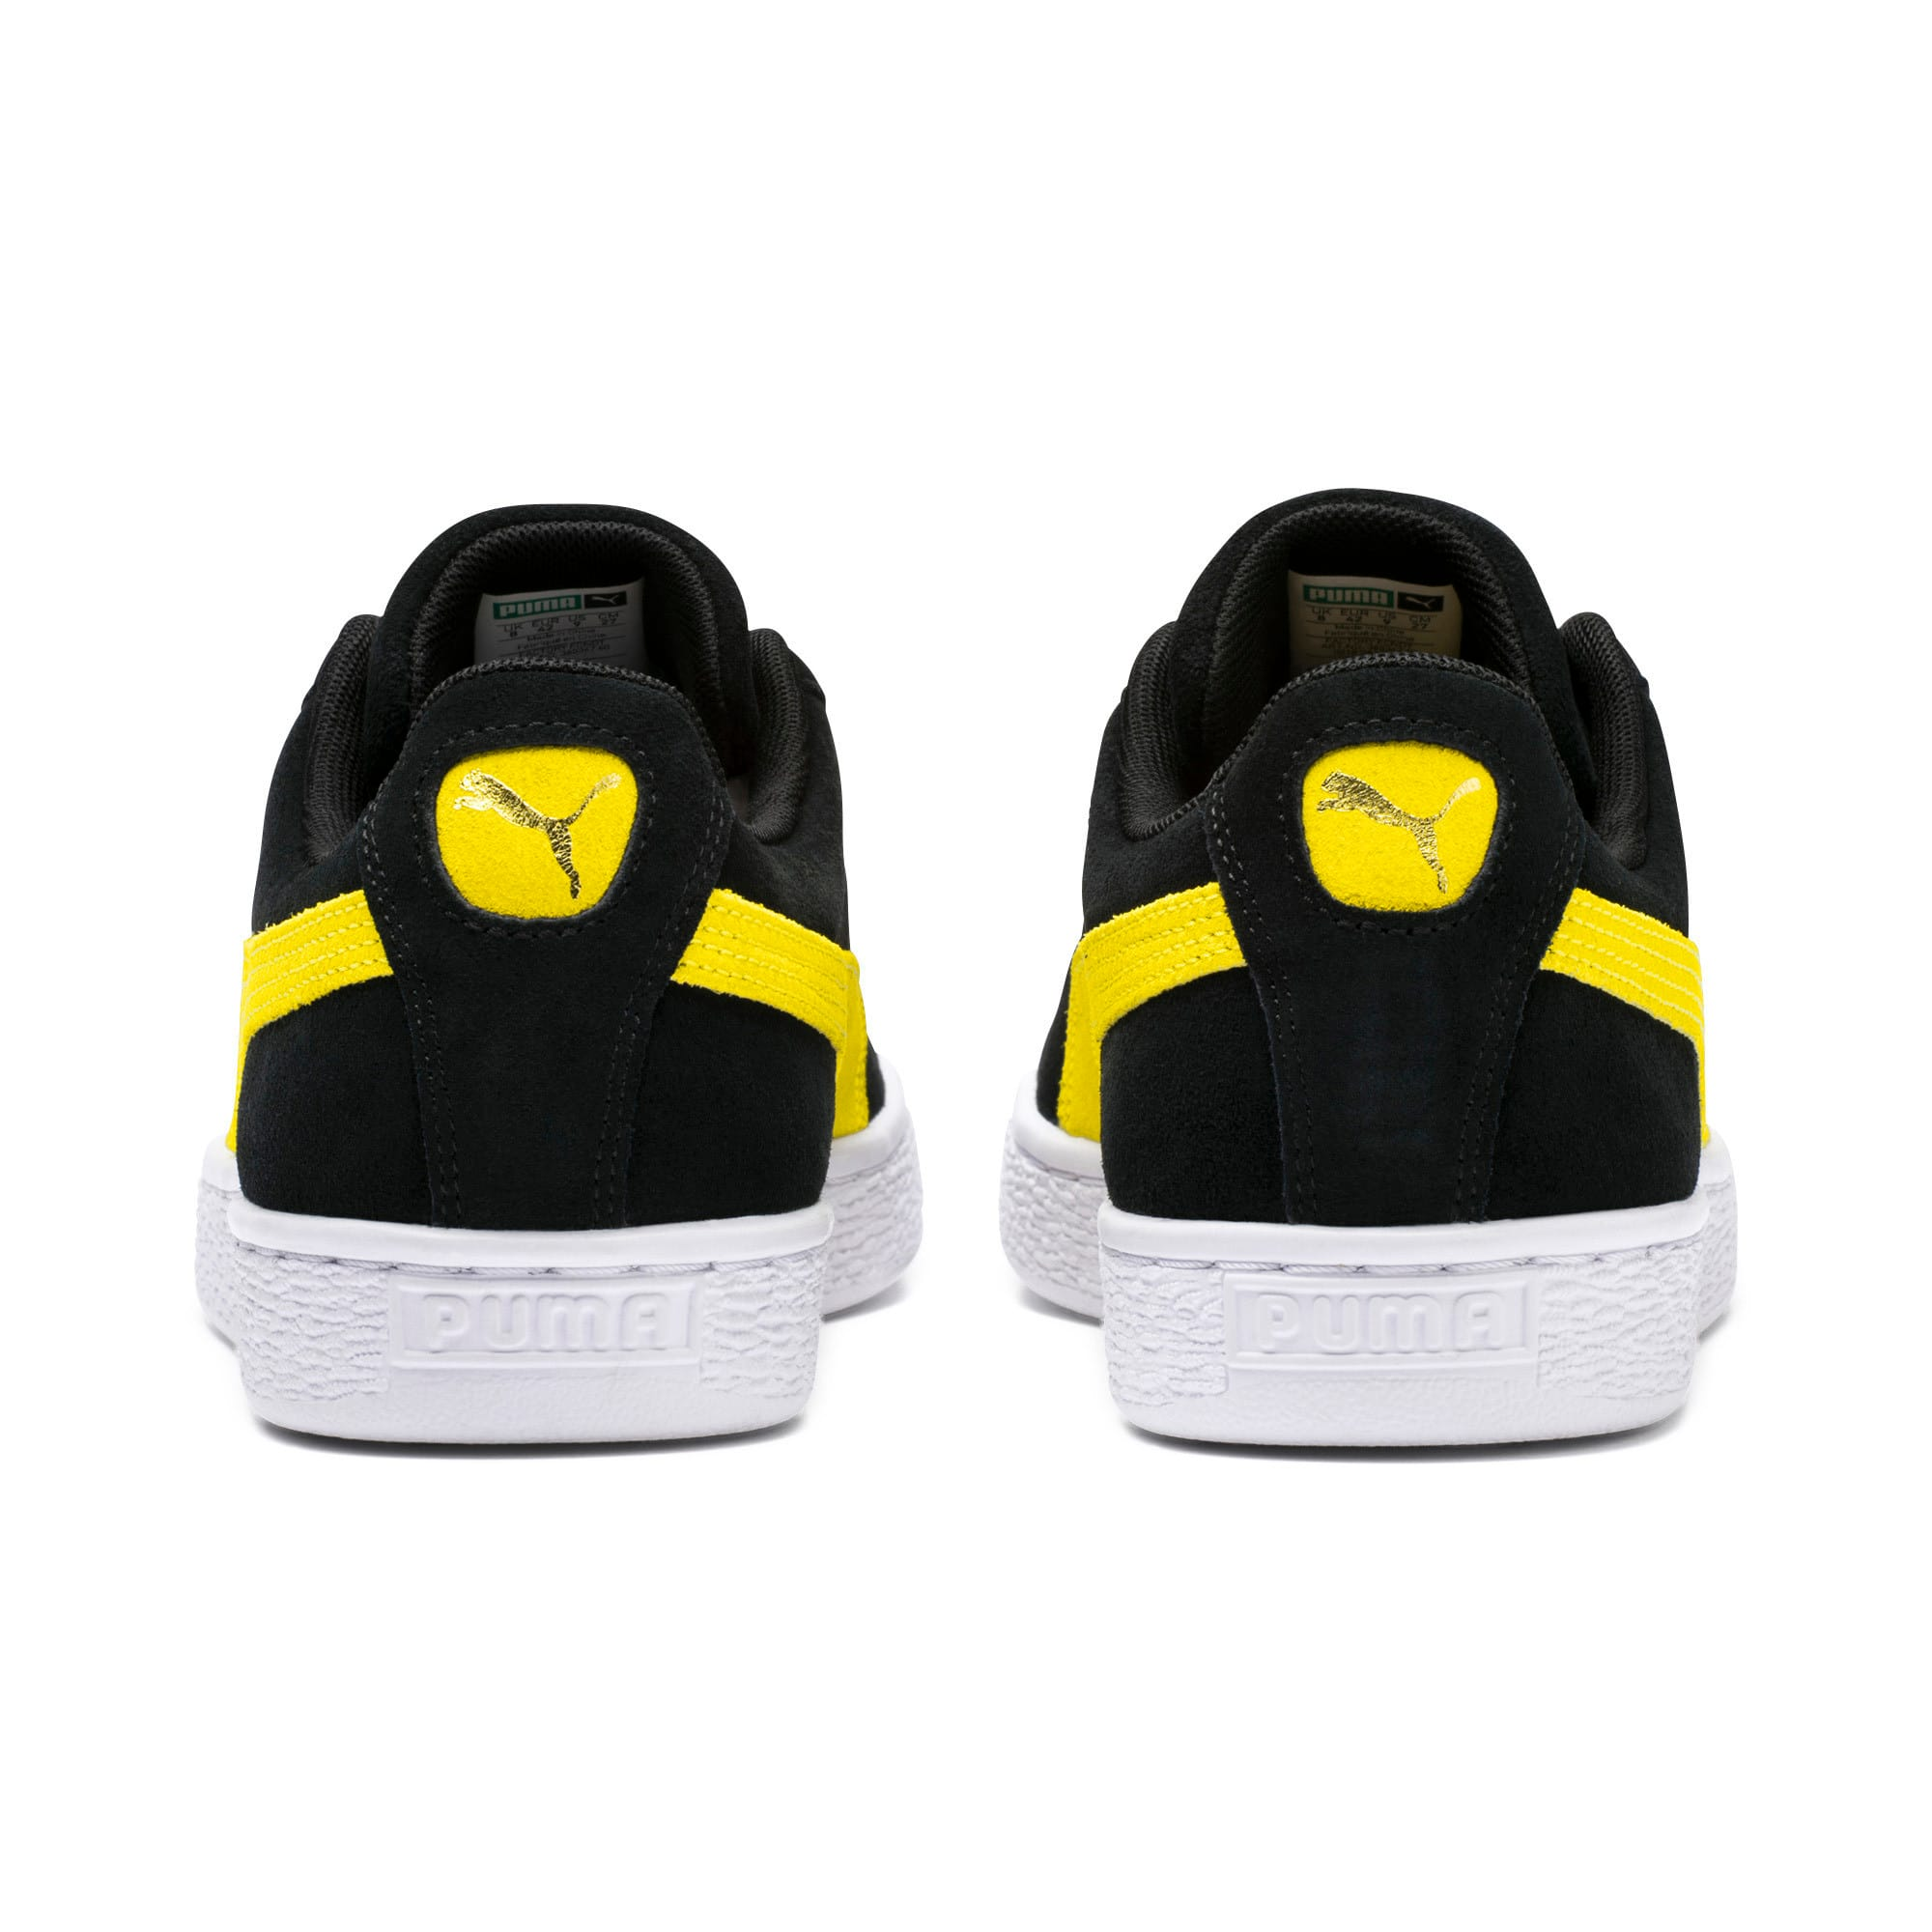 Thumbnail 3 of Suede Classic Trainers, Puma Black-Blazing Yellow, medium